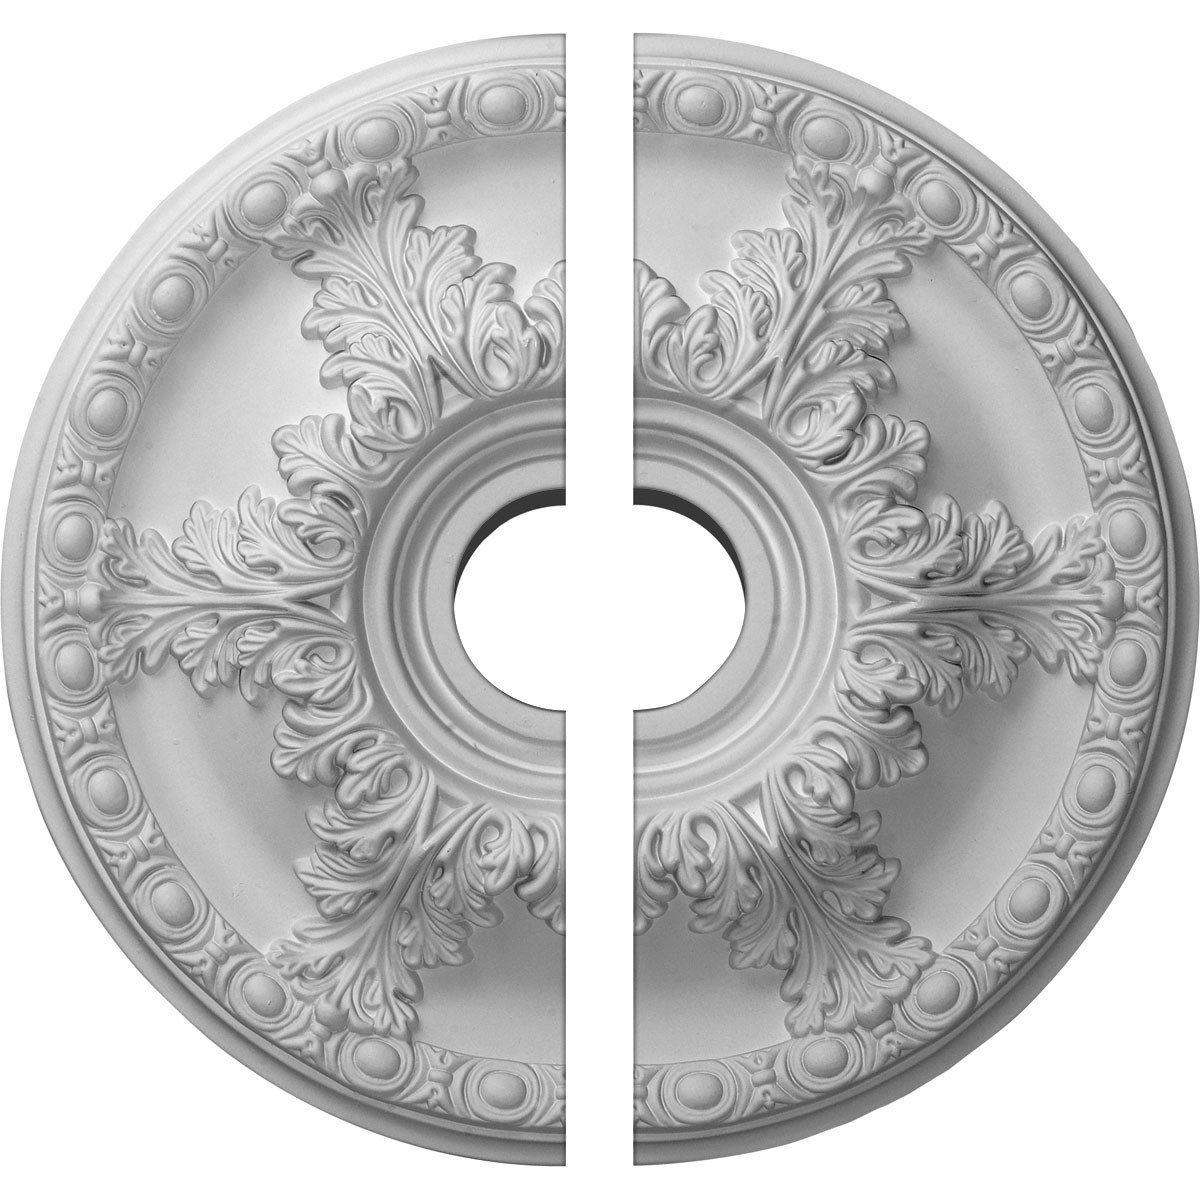 "EM-CM19GA2-03500 - 19""OD x 3 1/2""ID x 1 1/2""P Granada Ceiling Medallion, Two Piece (Fits Canopies up to 7 1/8"")"